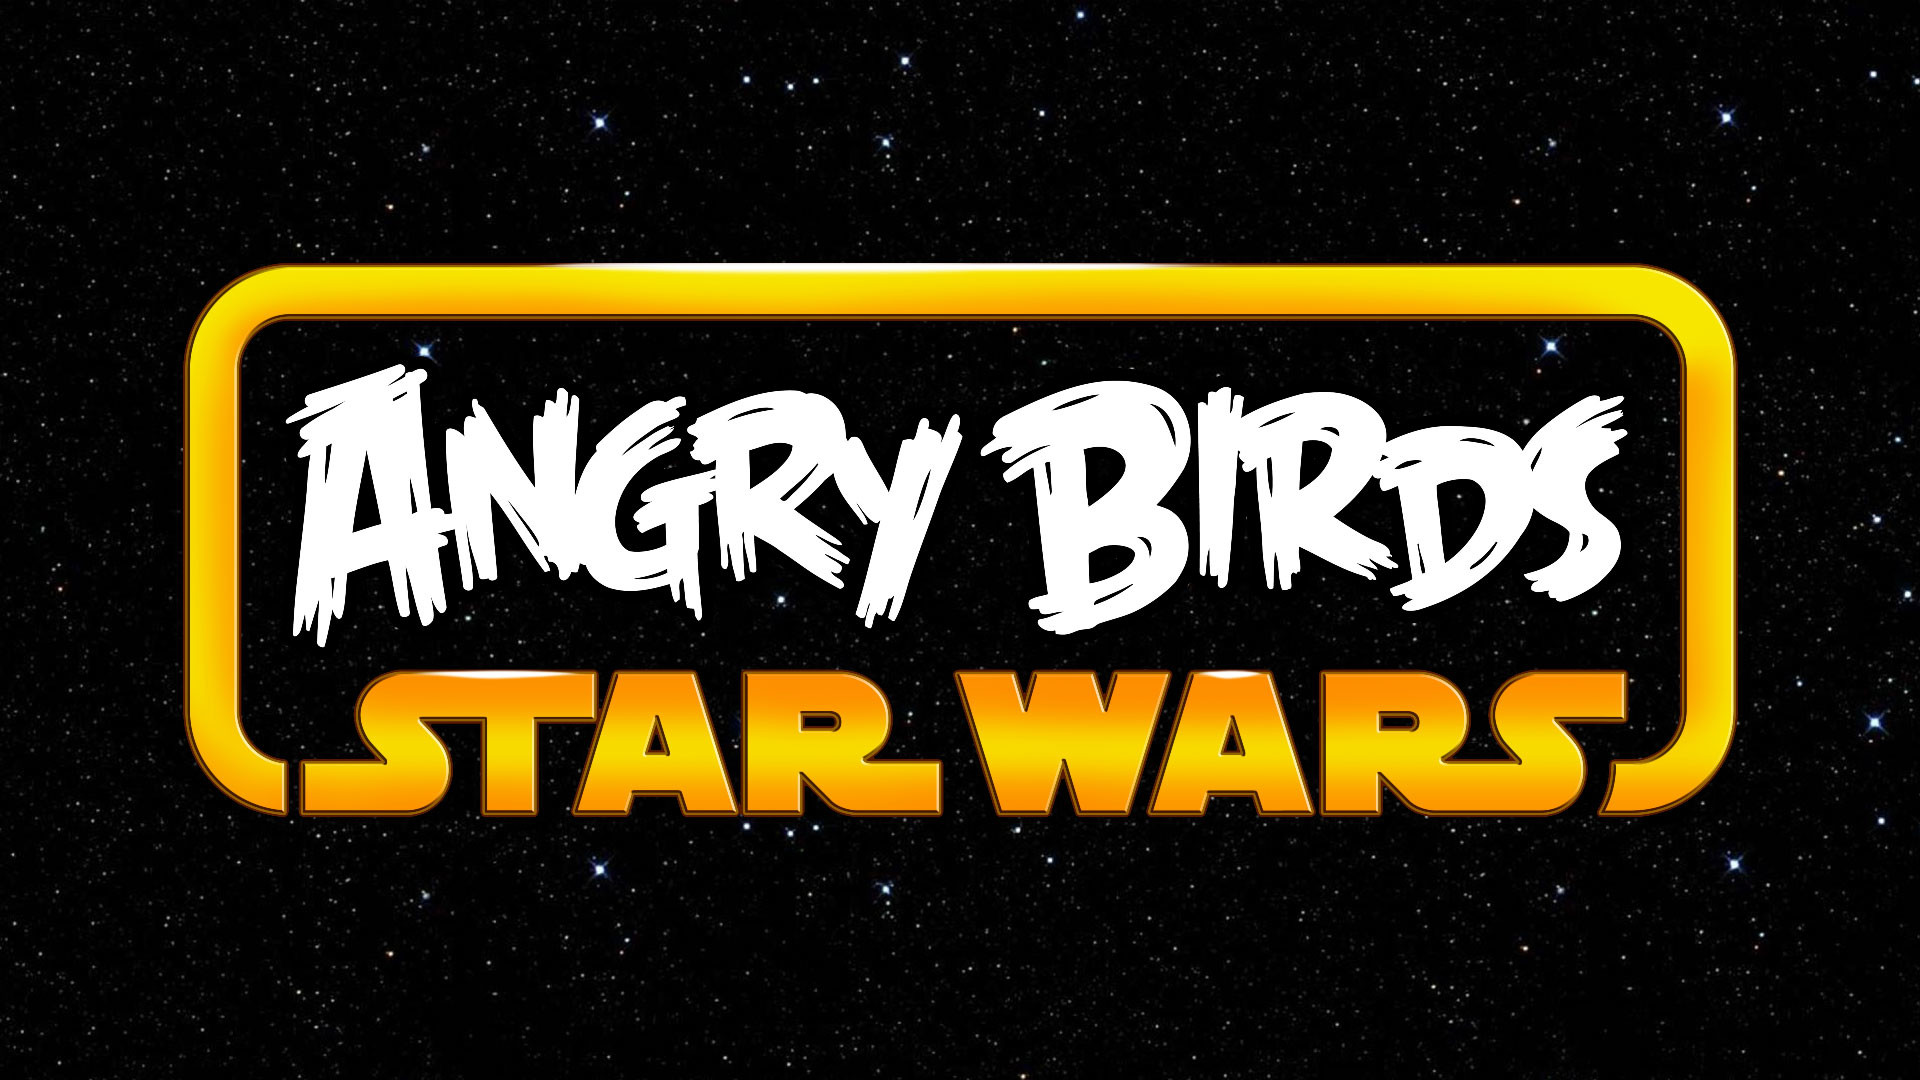 Angry Birds Star Wars Logo, Space Background wallpaper